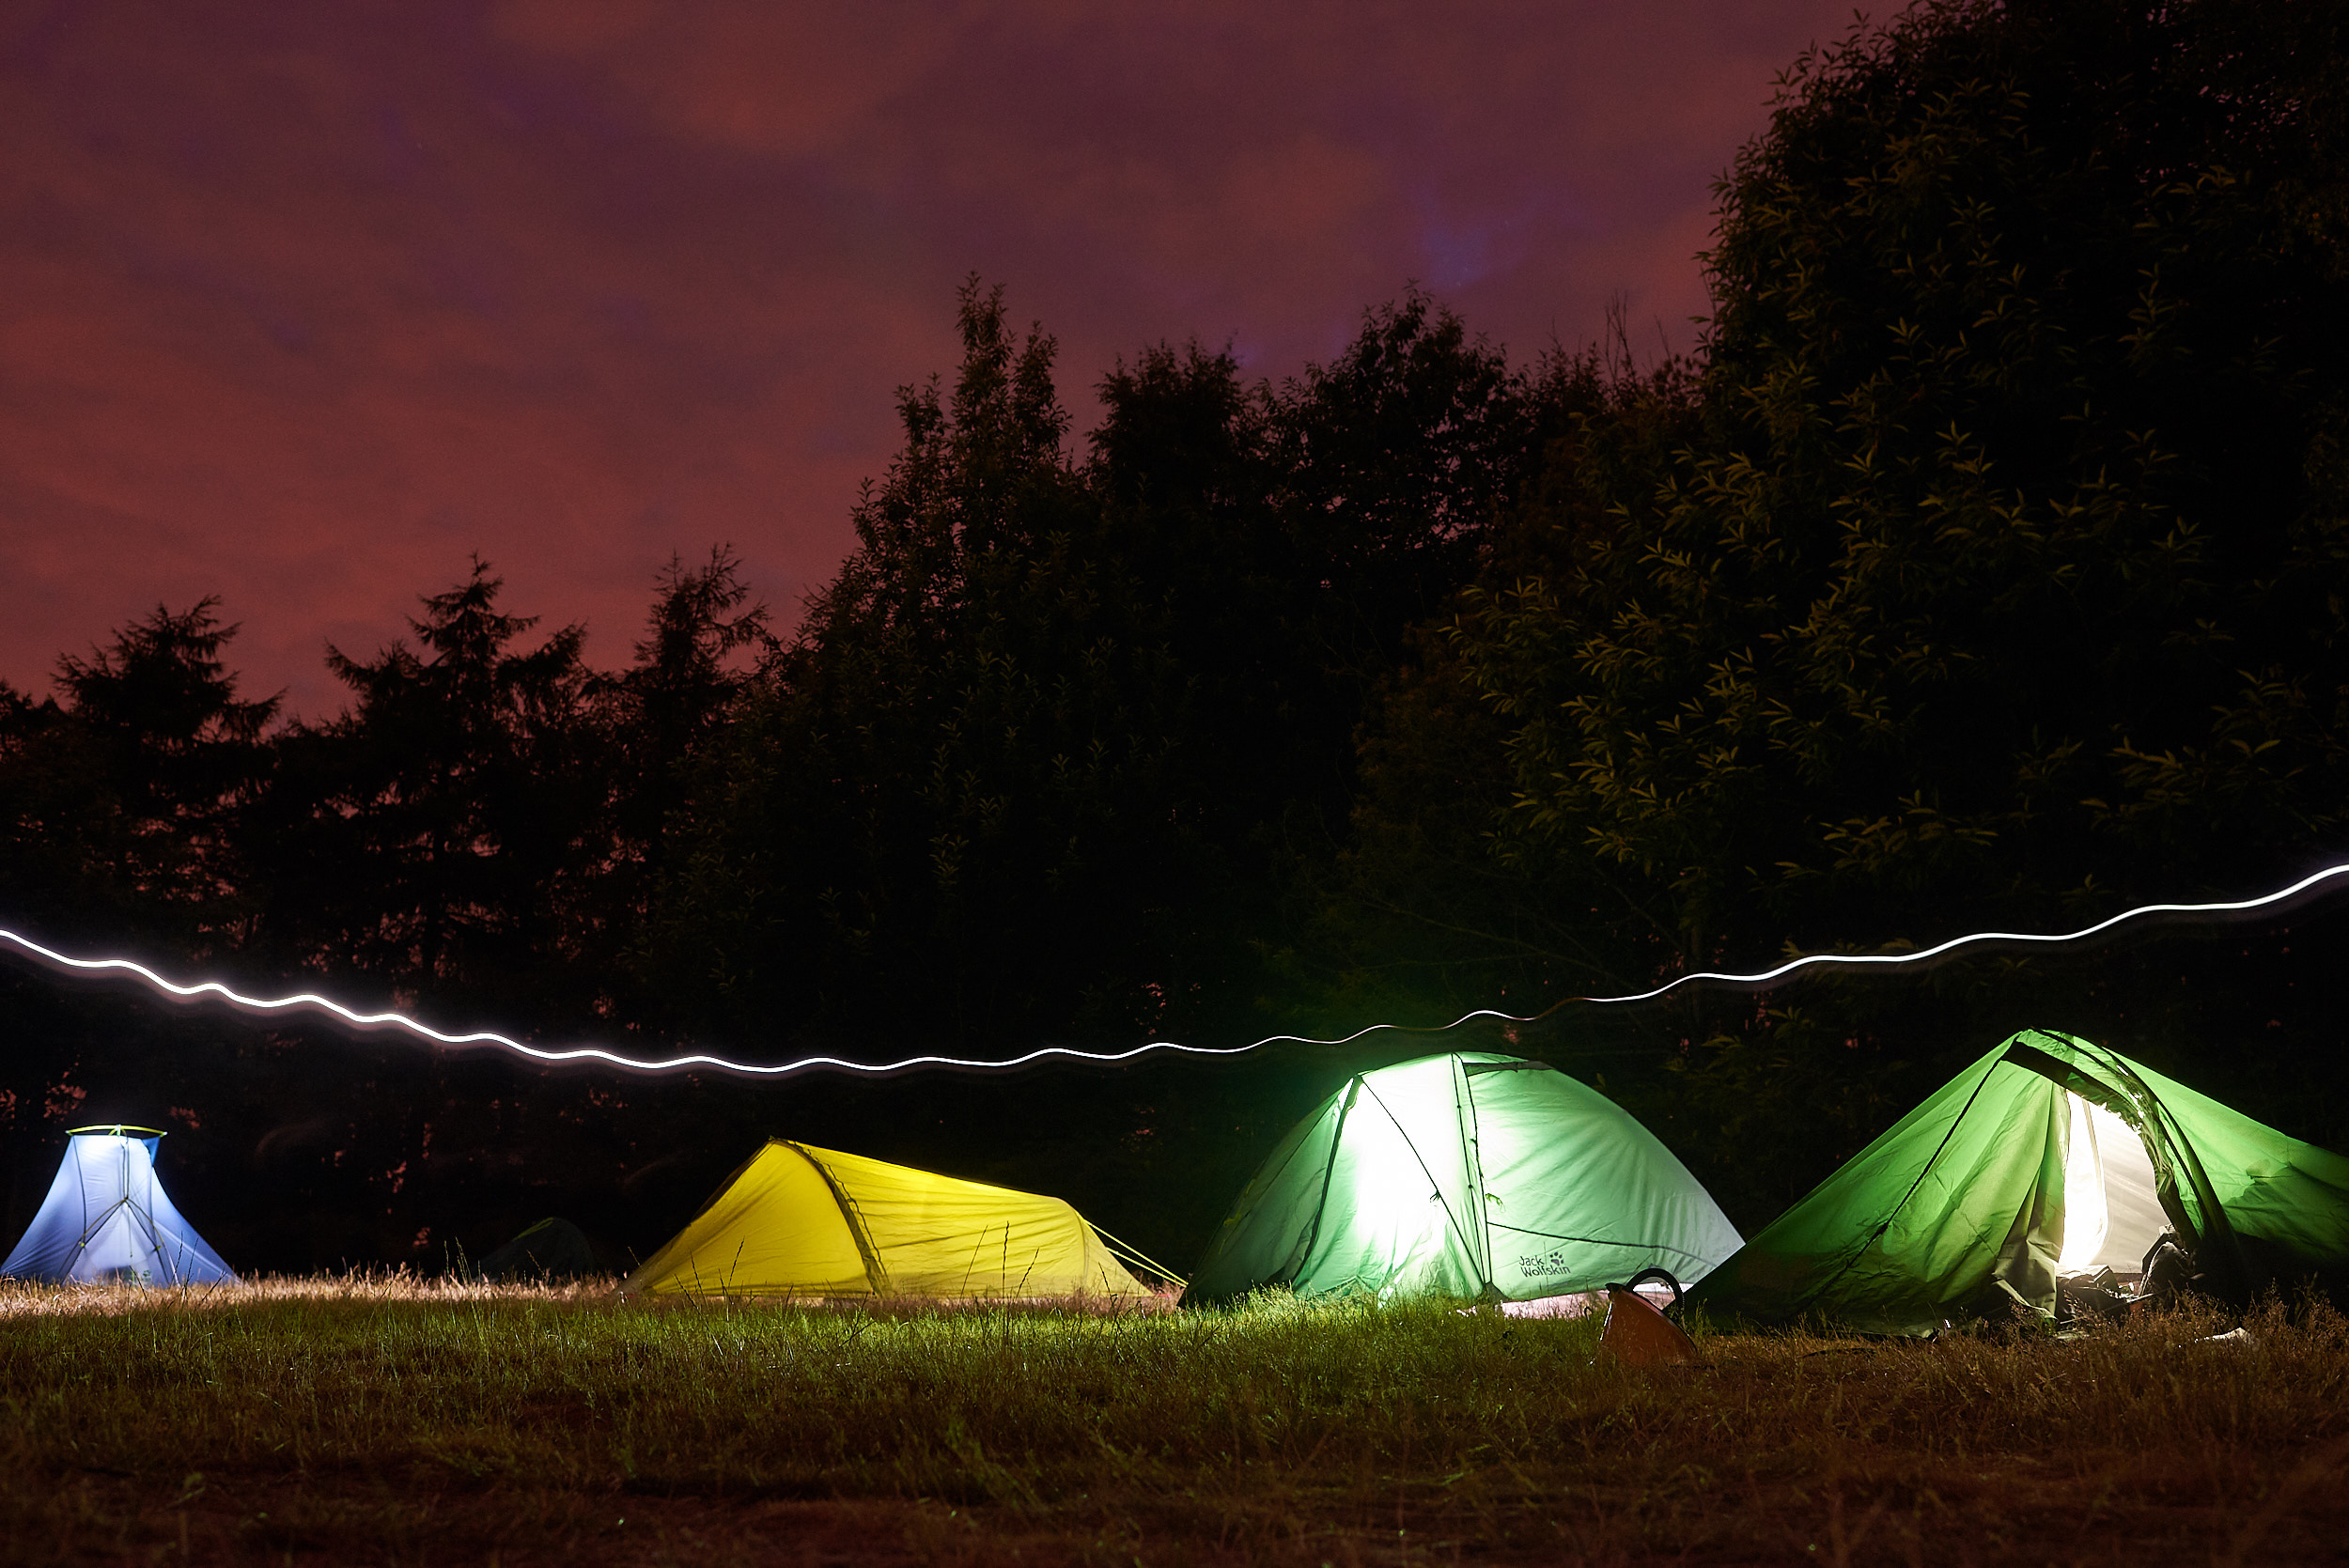 Wiggle now stock Jack Wolfskin tents